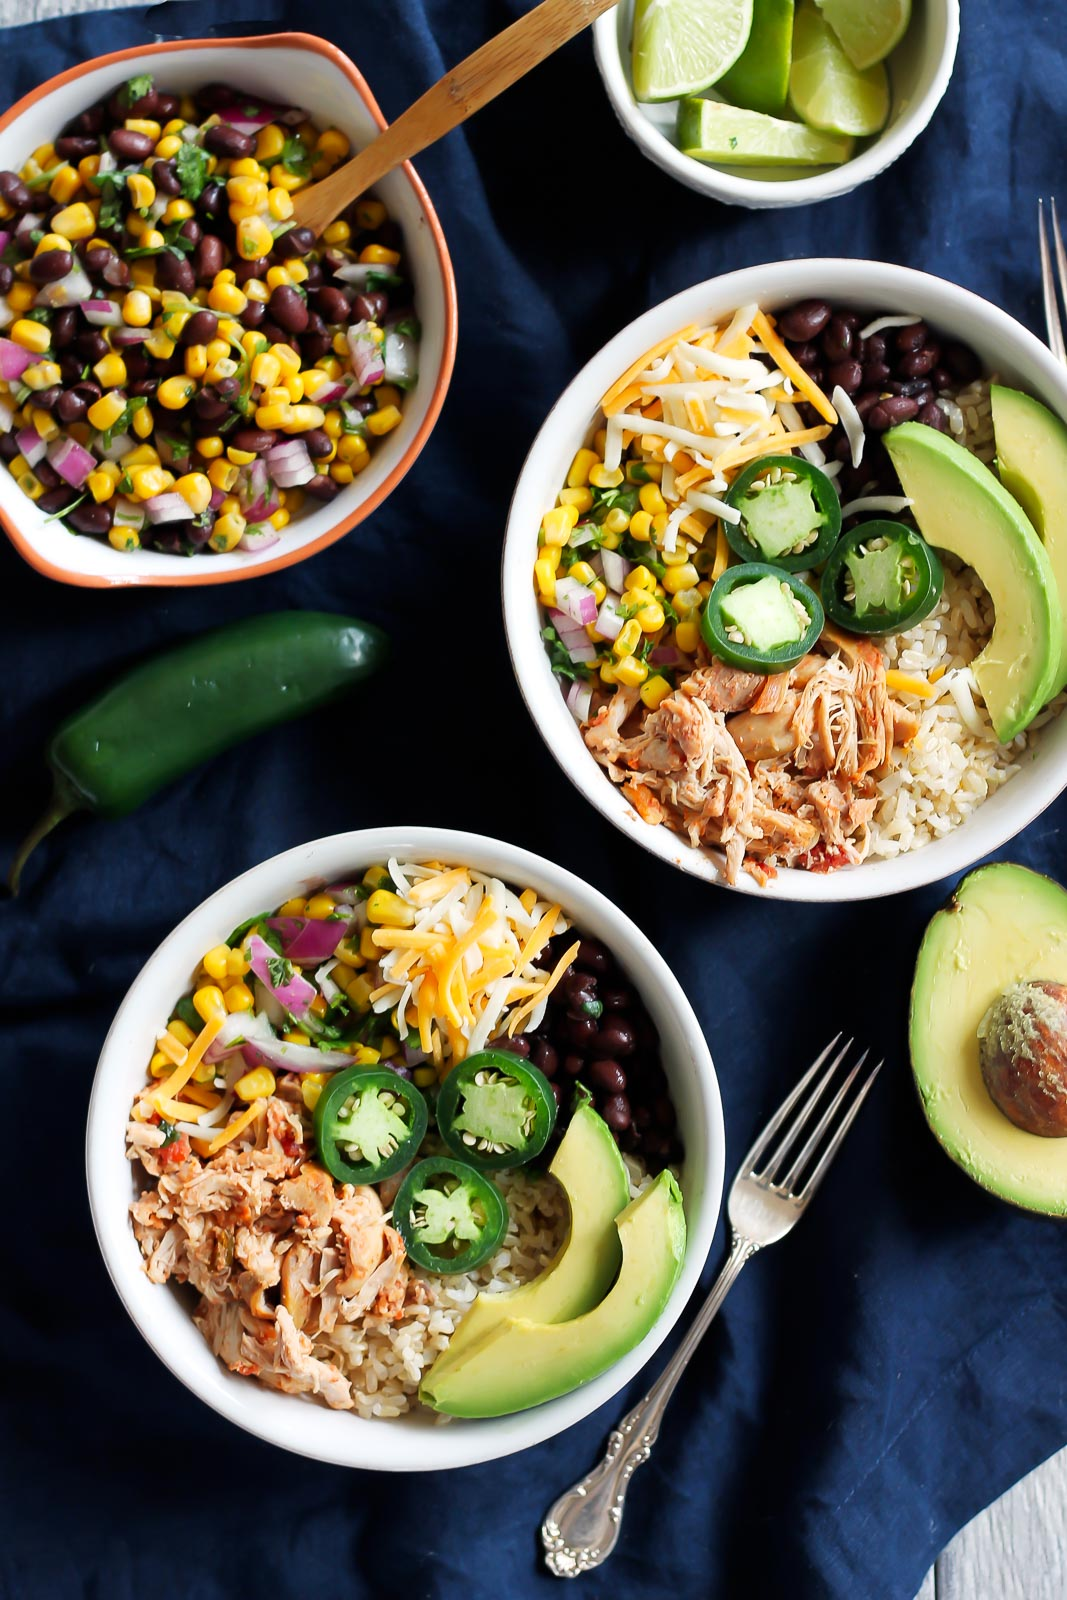 Easy and healthy recipes using leftover chicken that will make lunch and dinner a breeze. From cozy soups to my favorite enchiladas, these leftover chicken recipes will be your new go-to's for weekday meal prep!